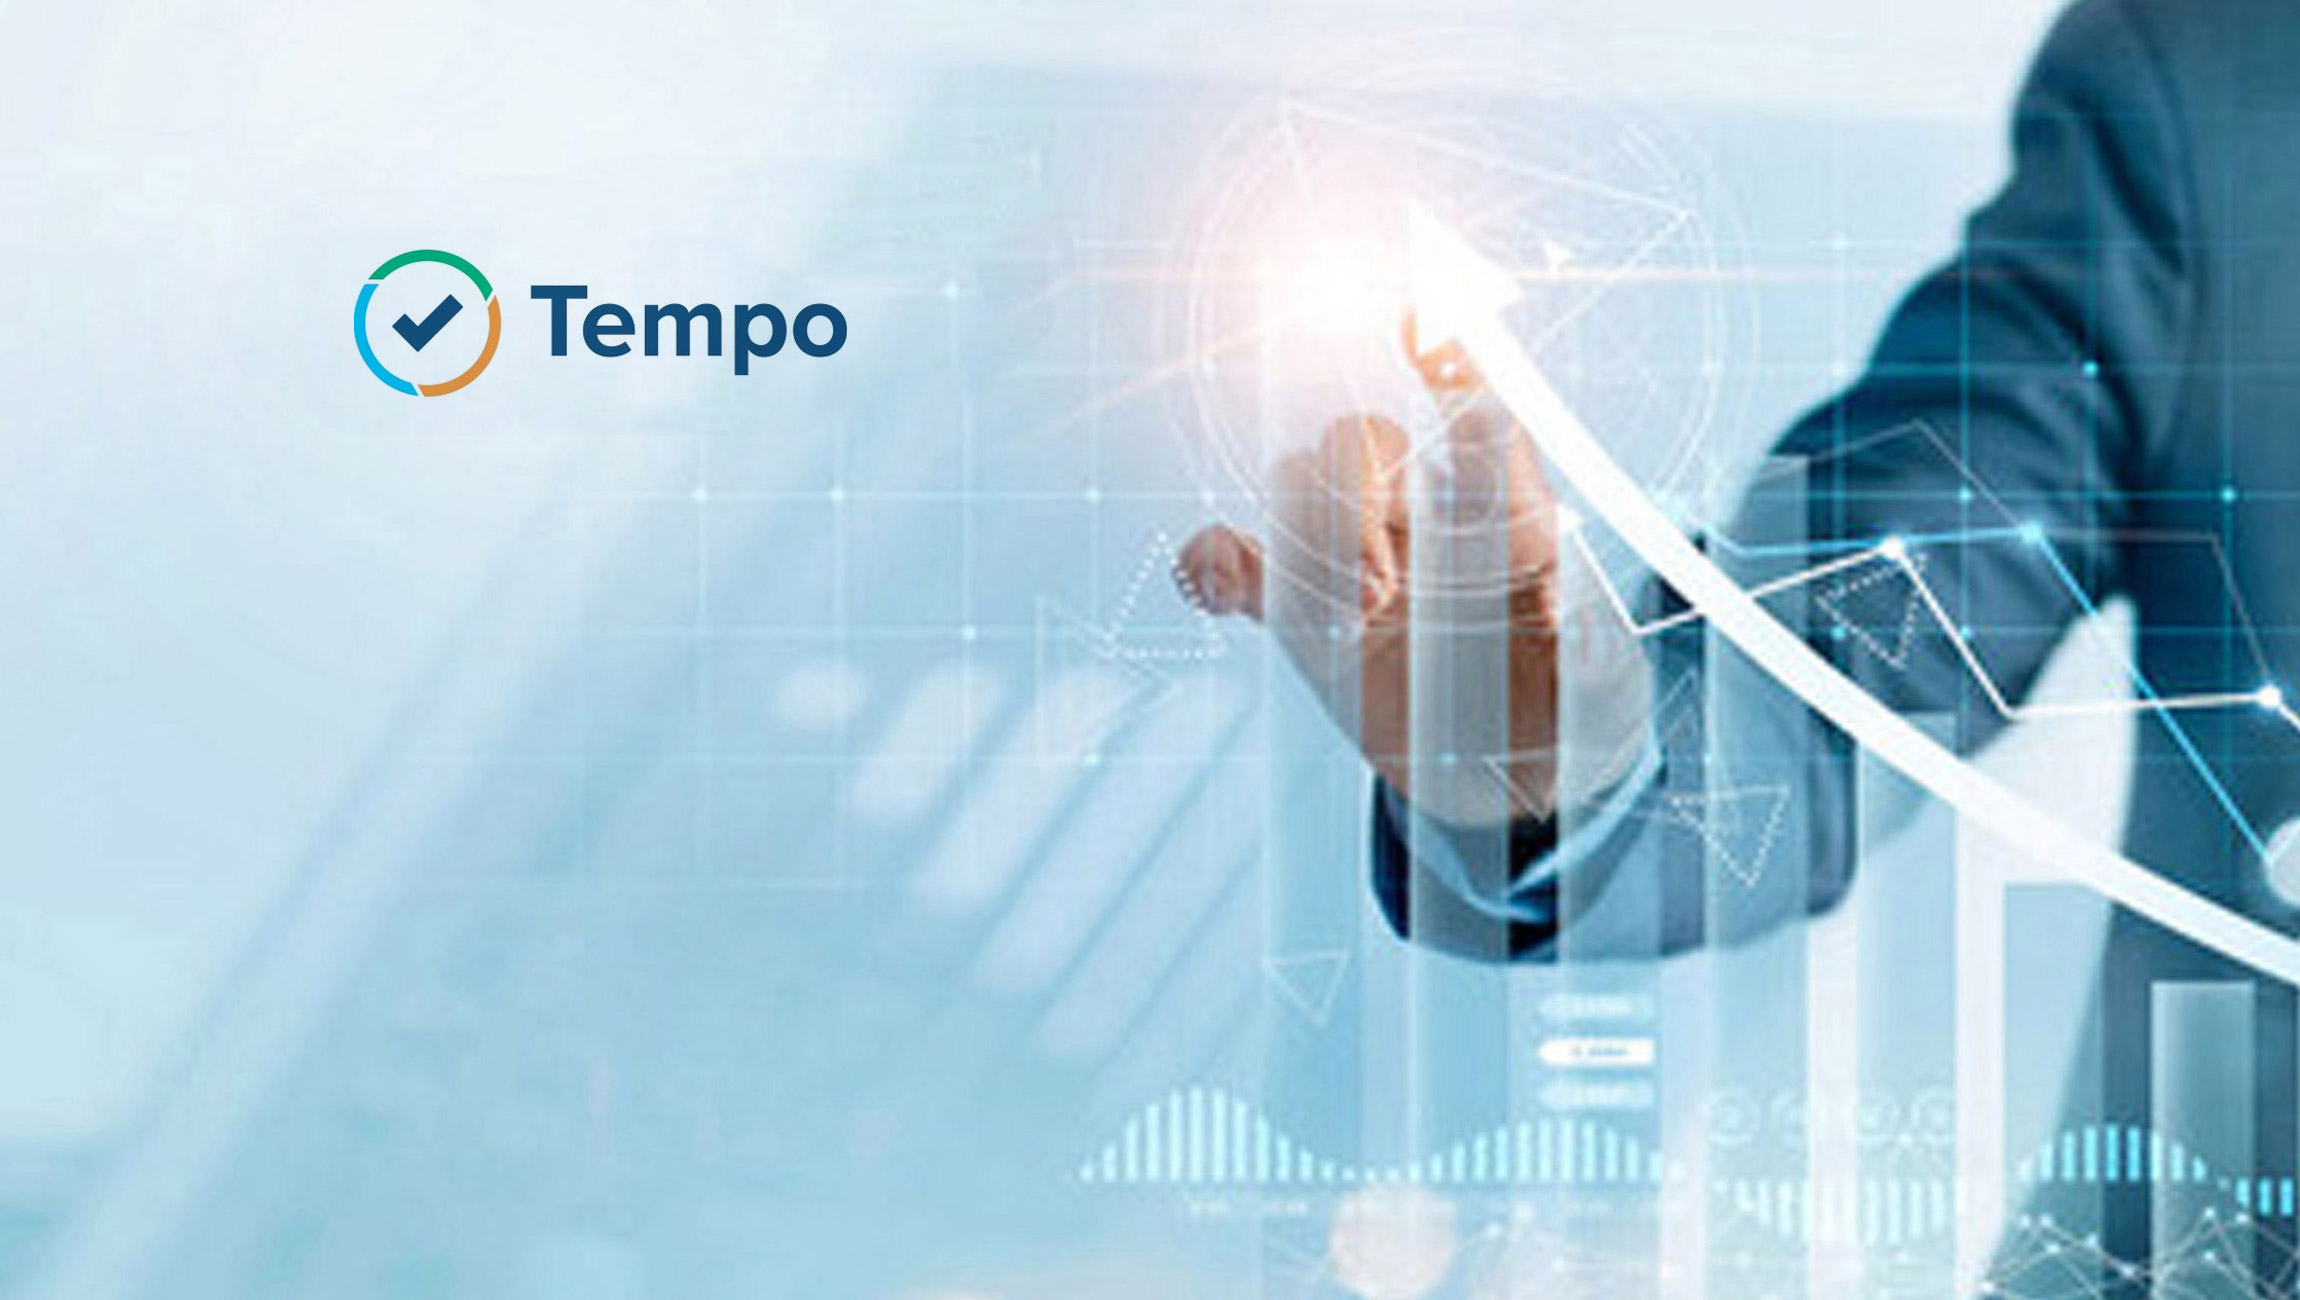 Tempo-Software-Sees-Double-Digit-Increase-in-Annual-Recurring-Revenue-as-Adoption-of-Time-and-Team-Management-Solution-for-Jira-Continues-to-Rise